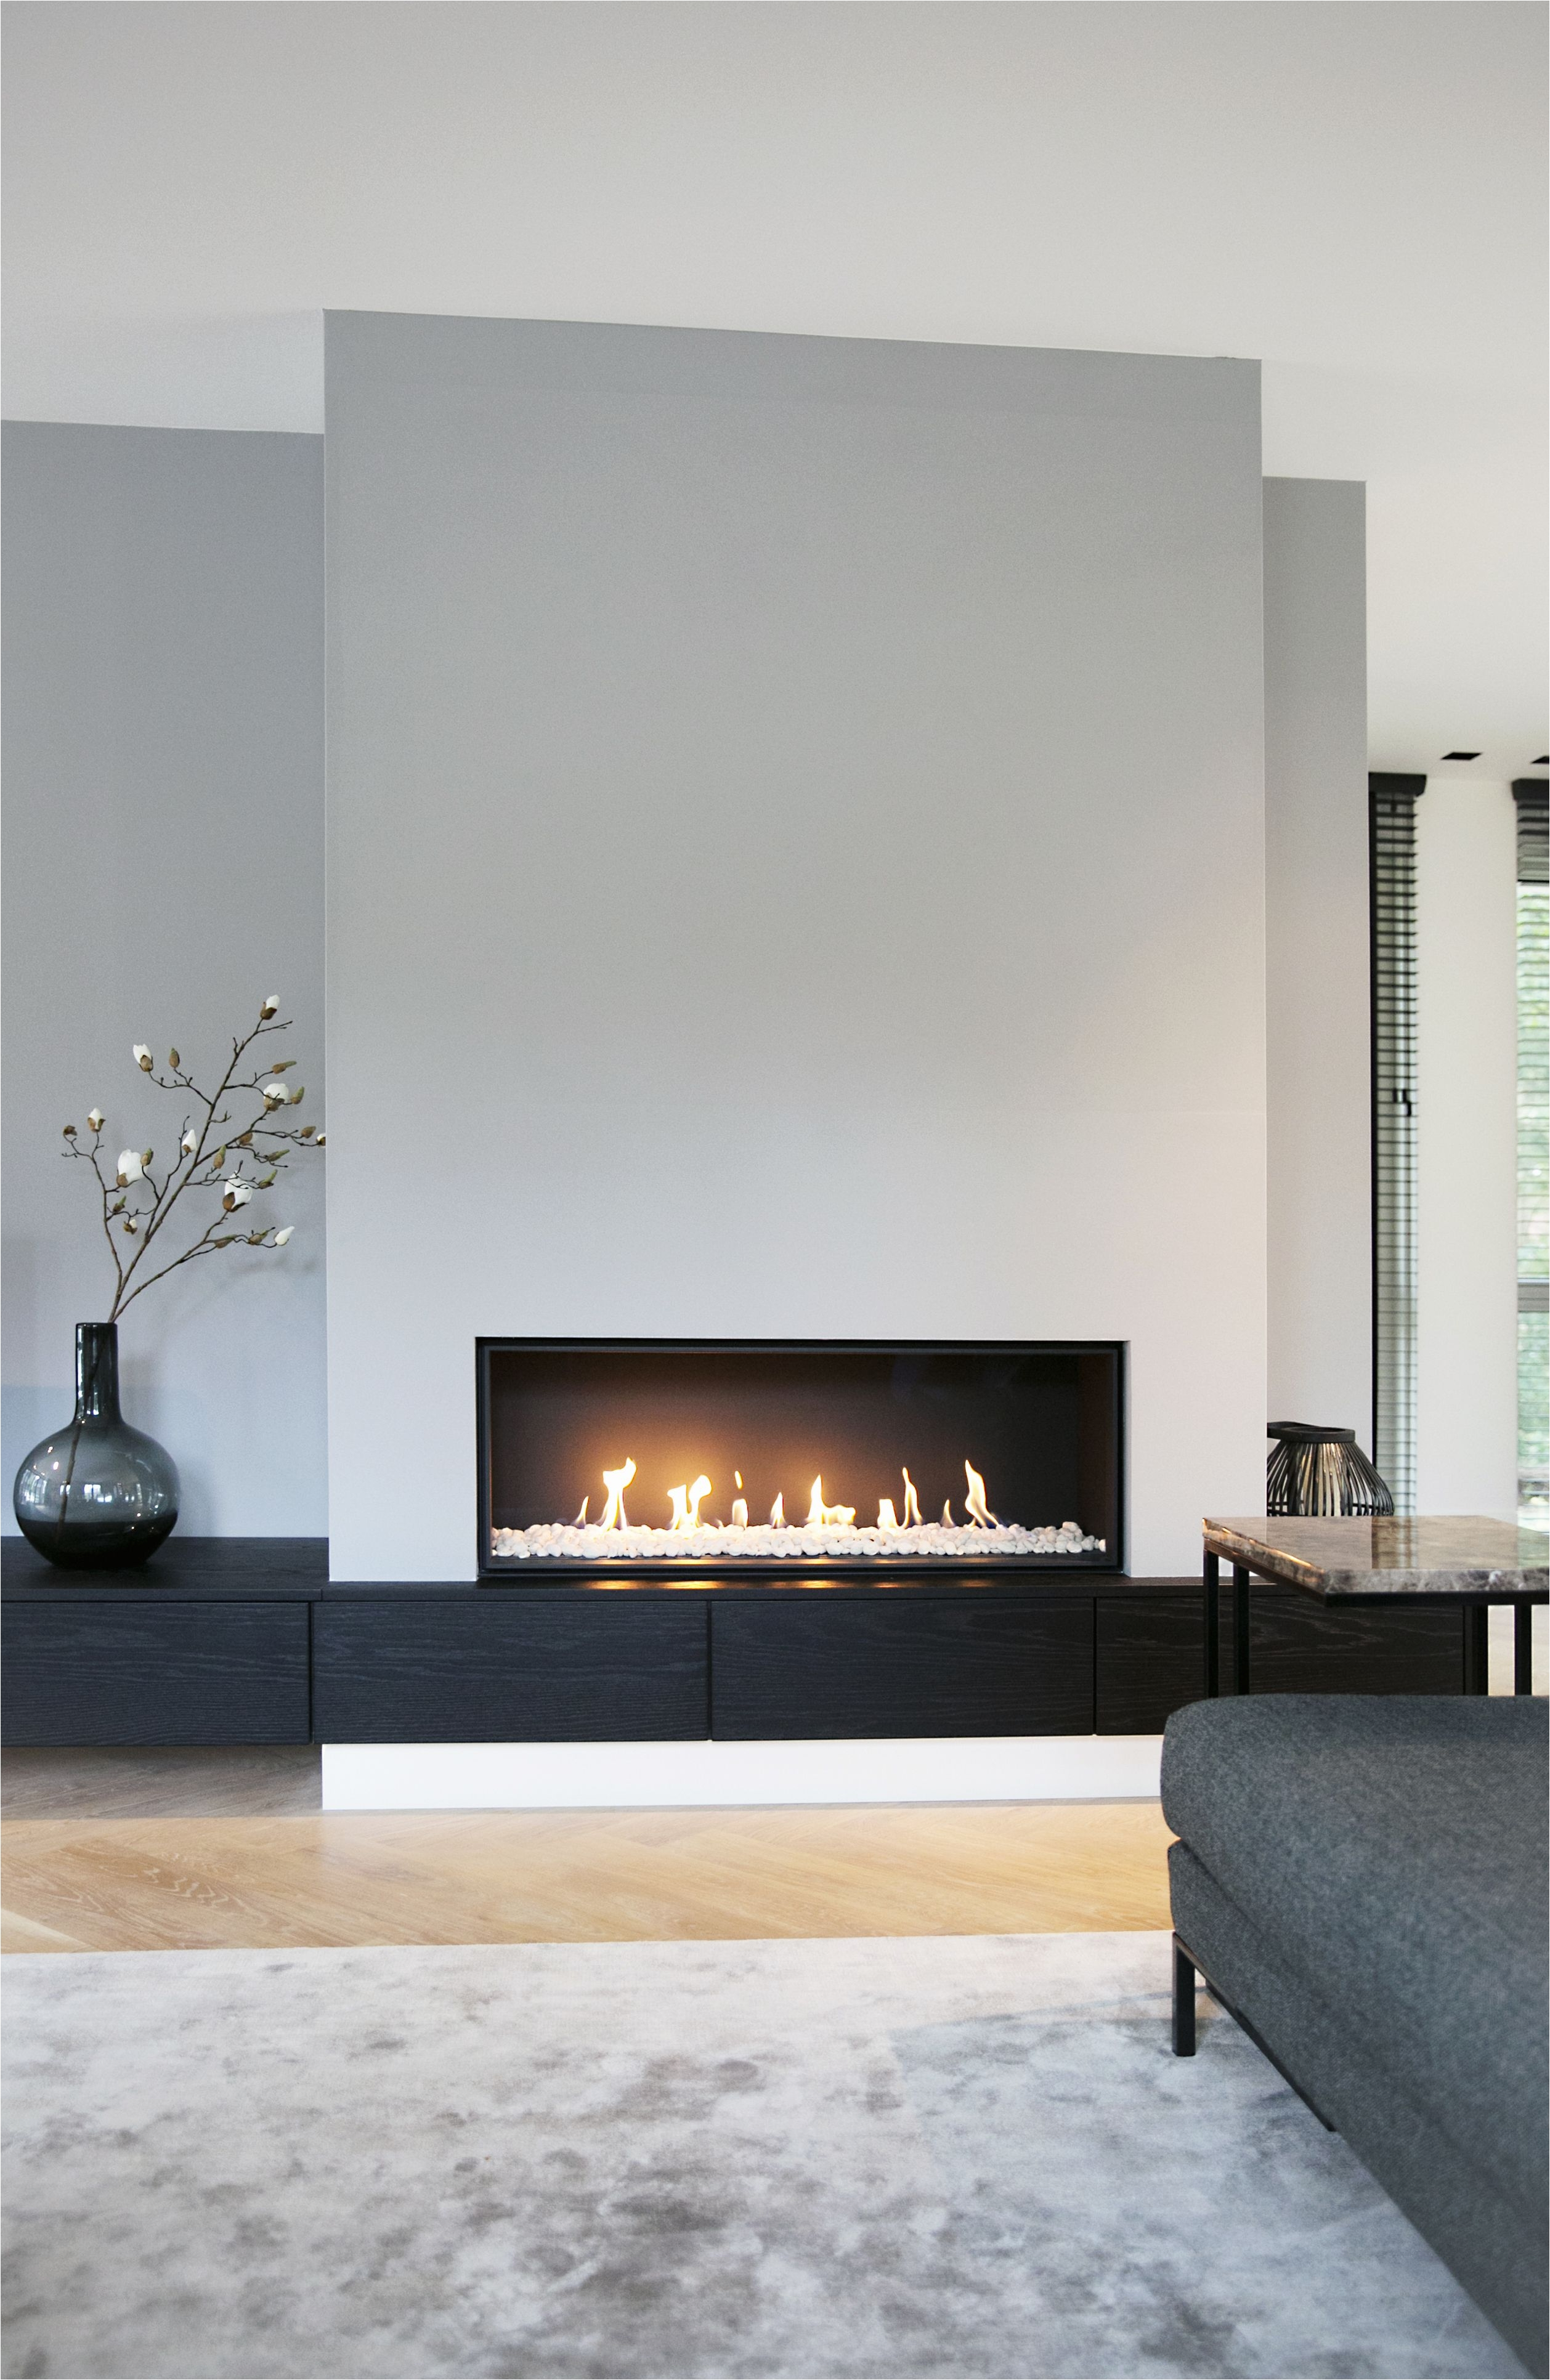 element 4 fireplace project interieur design by nicole fleur fireplace pinterest of element 4 fireplace